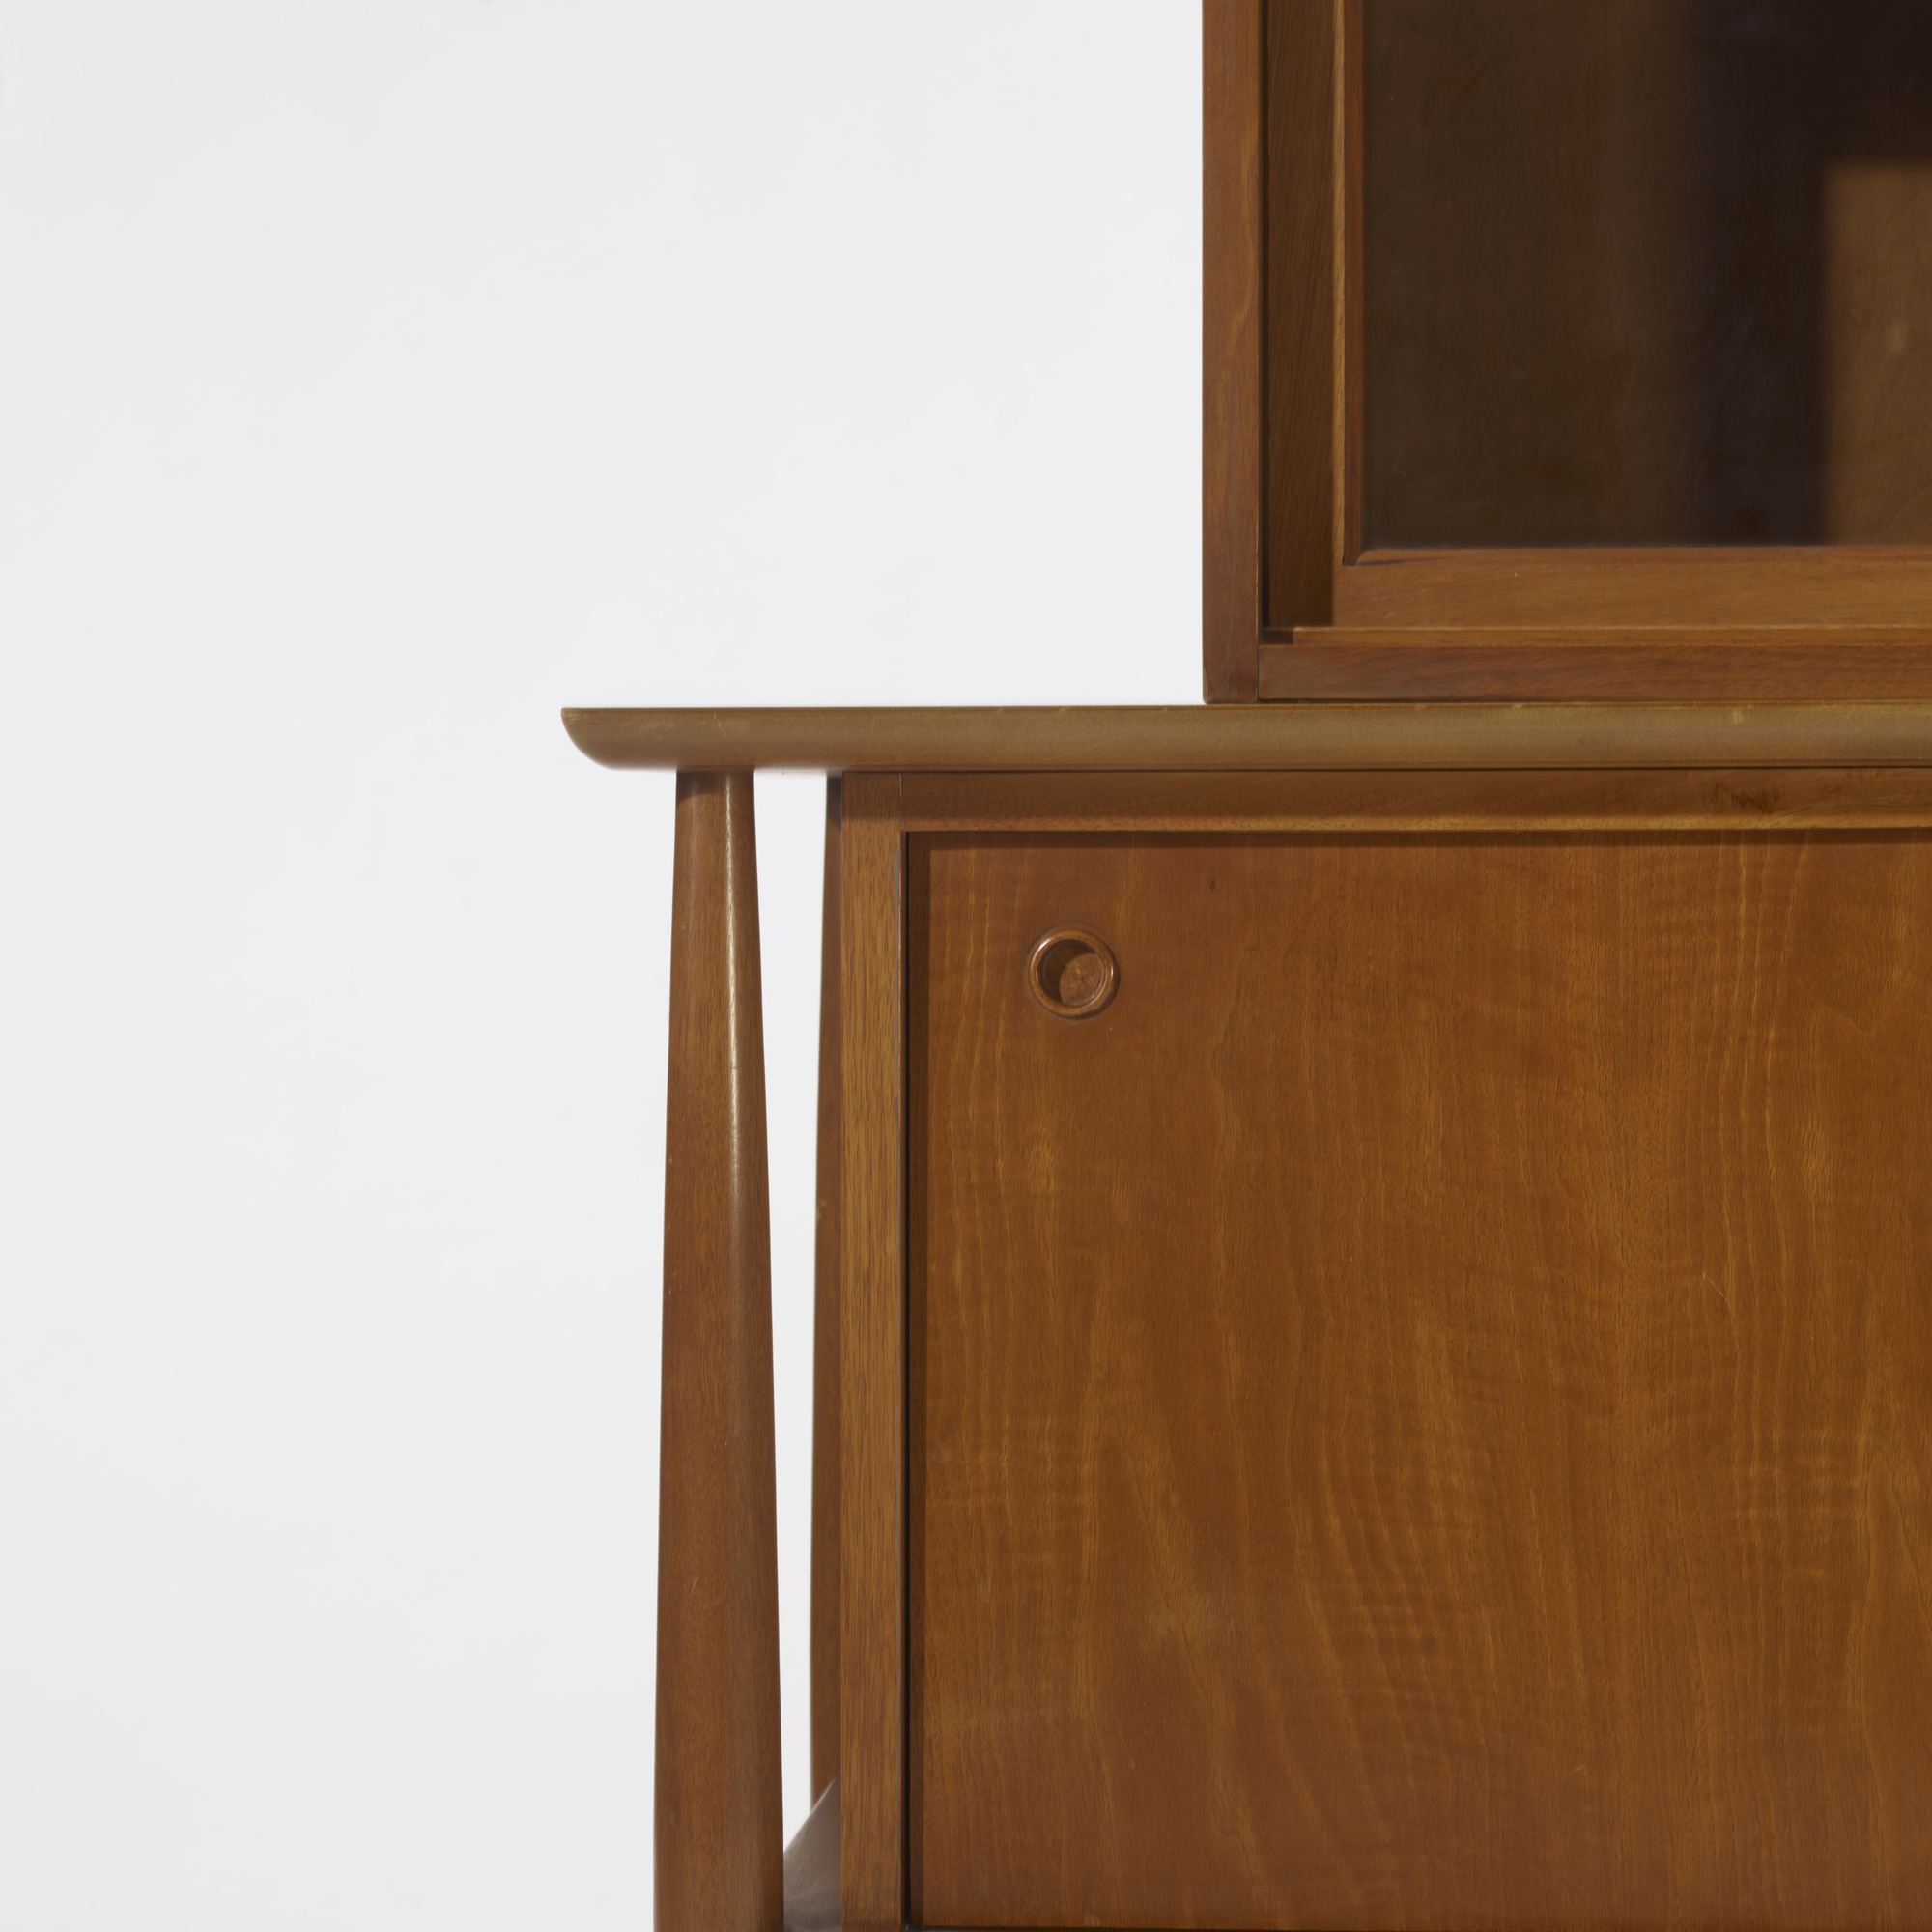 137: In the manner of Finn Juhl / credenza and cabinet (3 of 3)